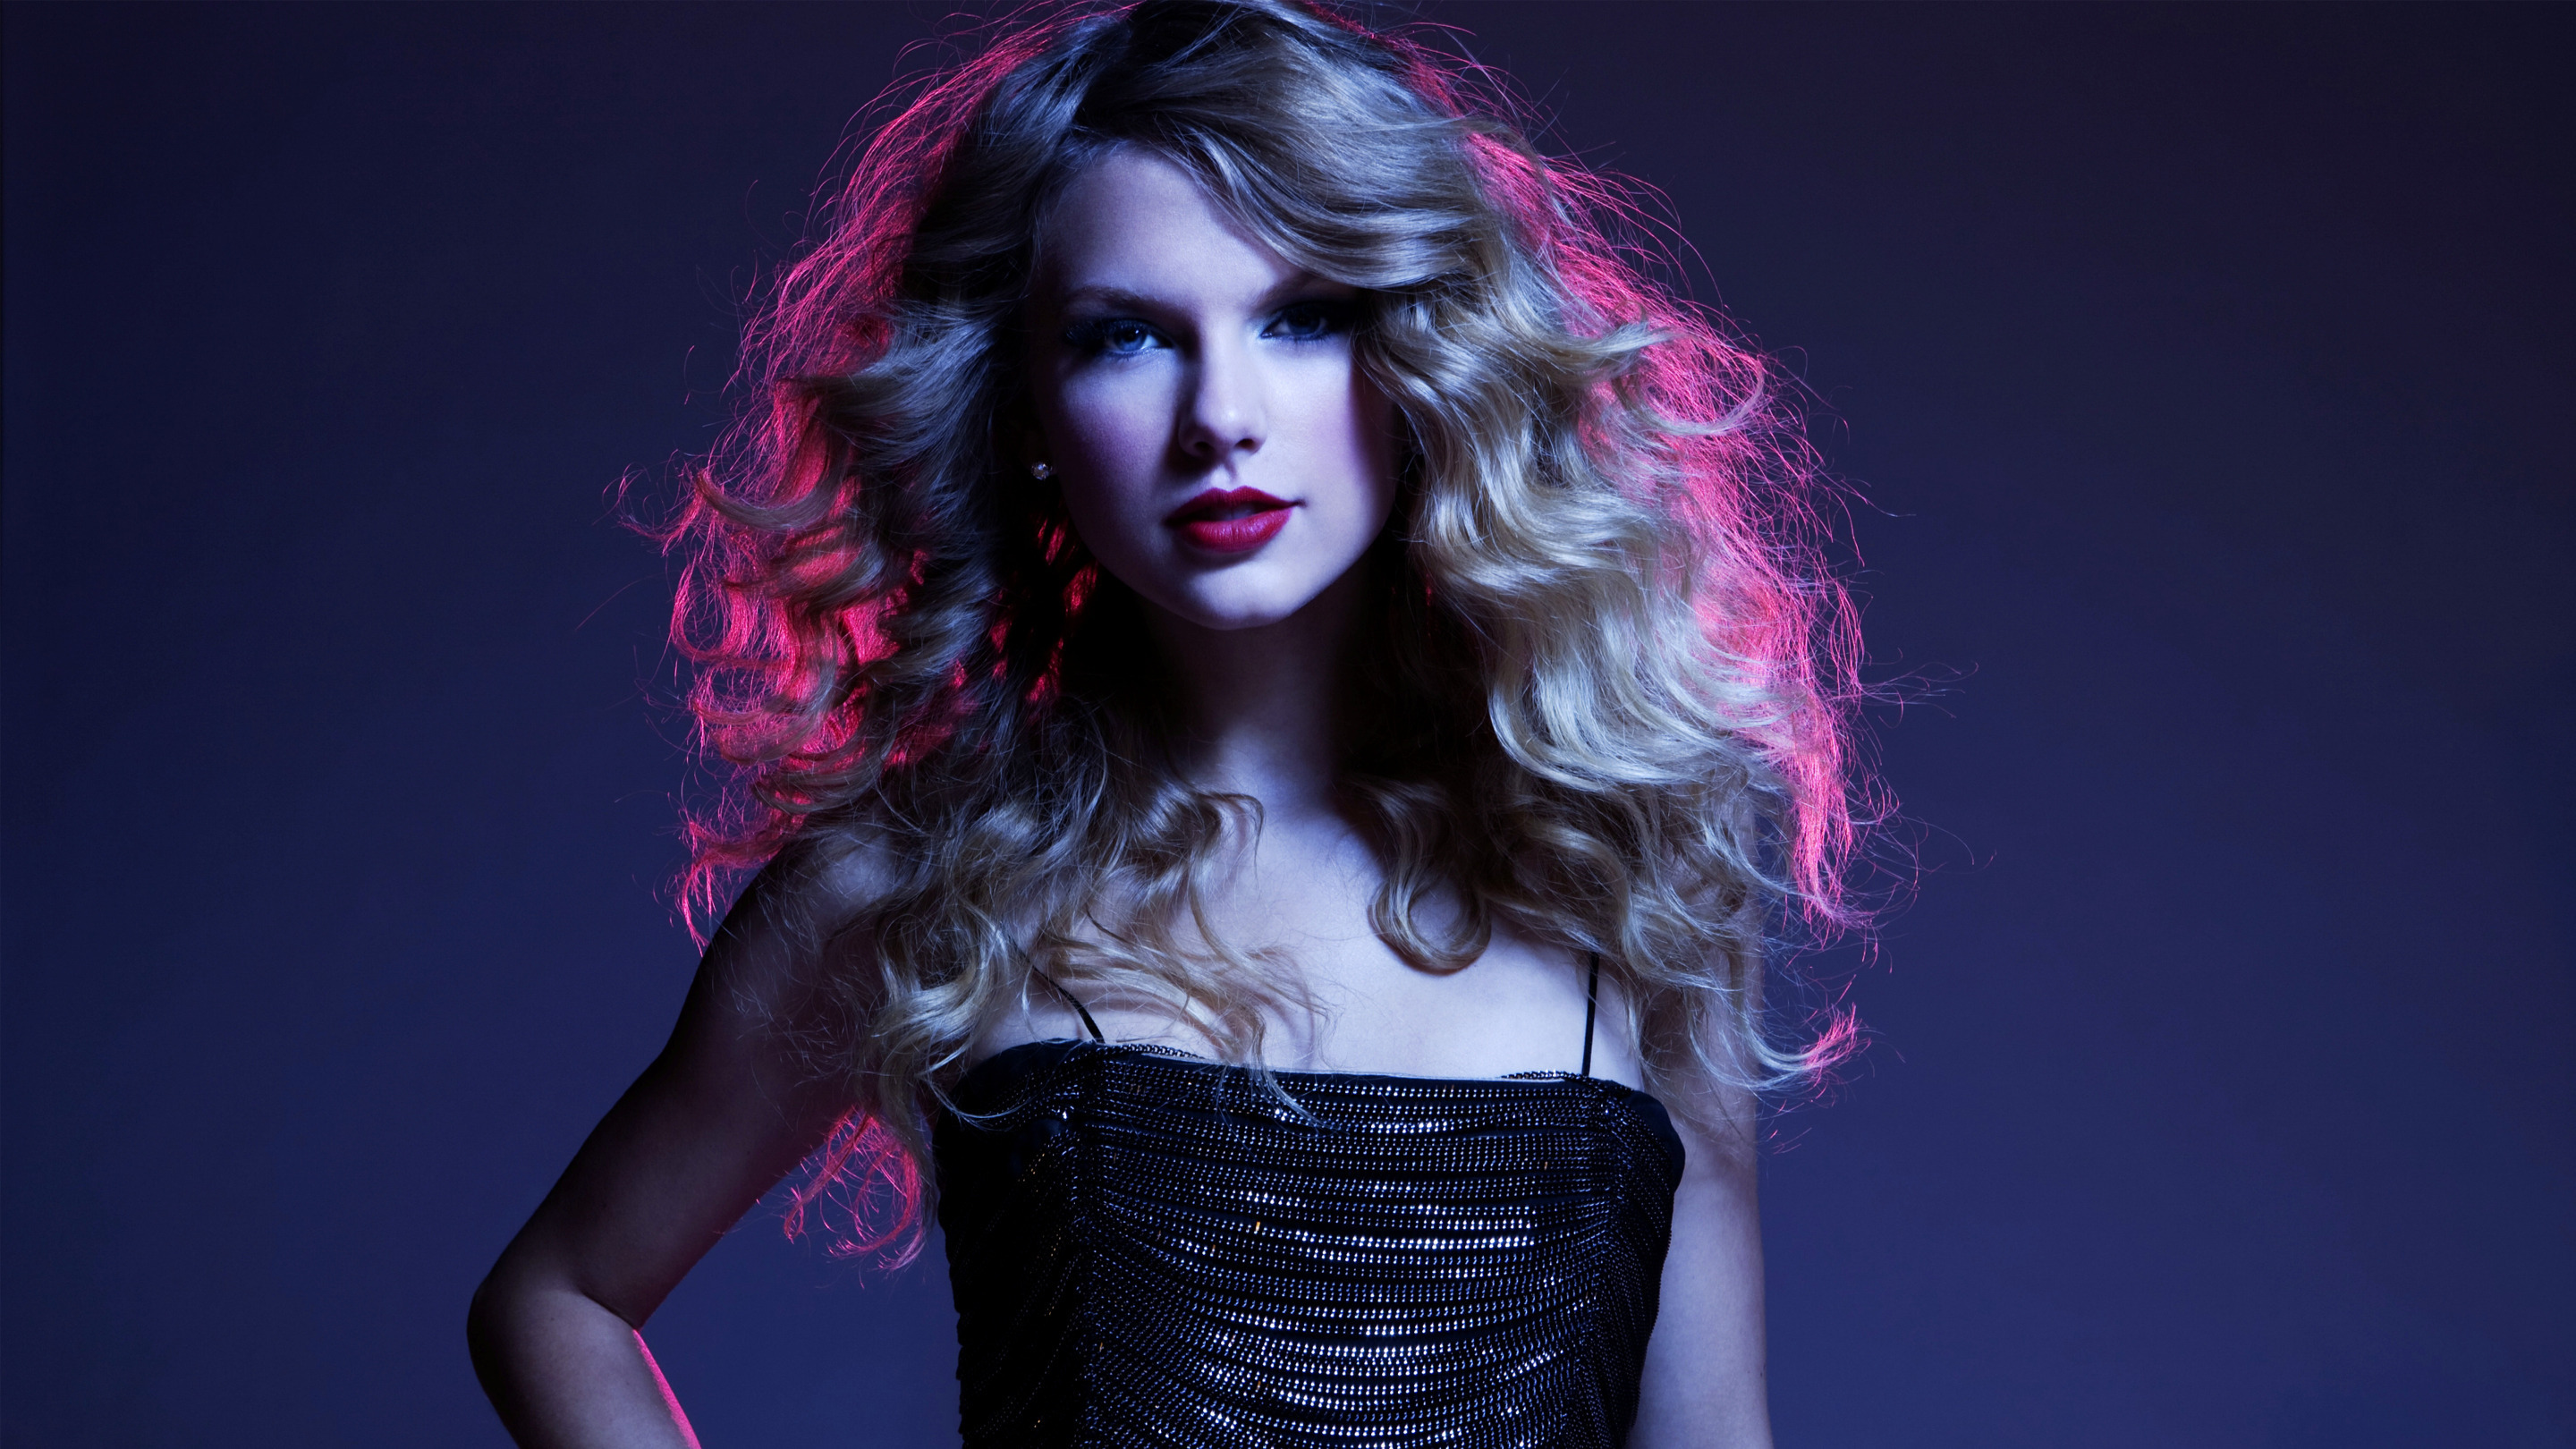 Taylor Swift Full HD Wallpaper and Background 2880x1620 ID154614